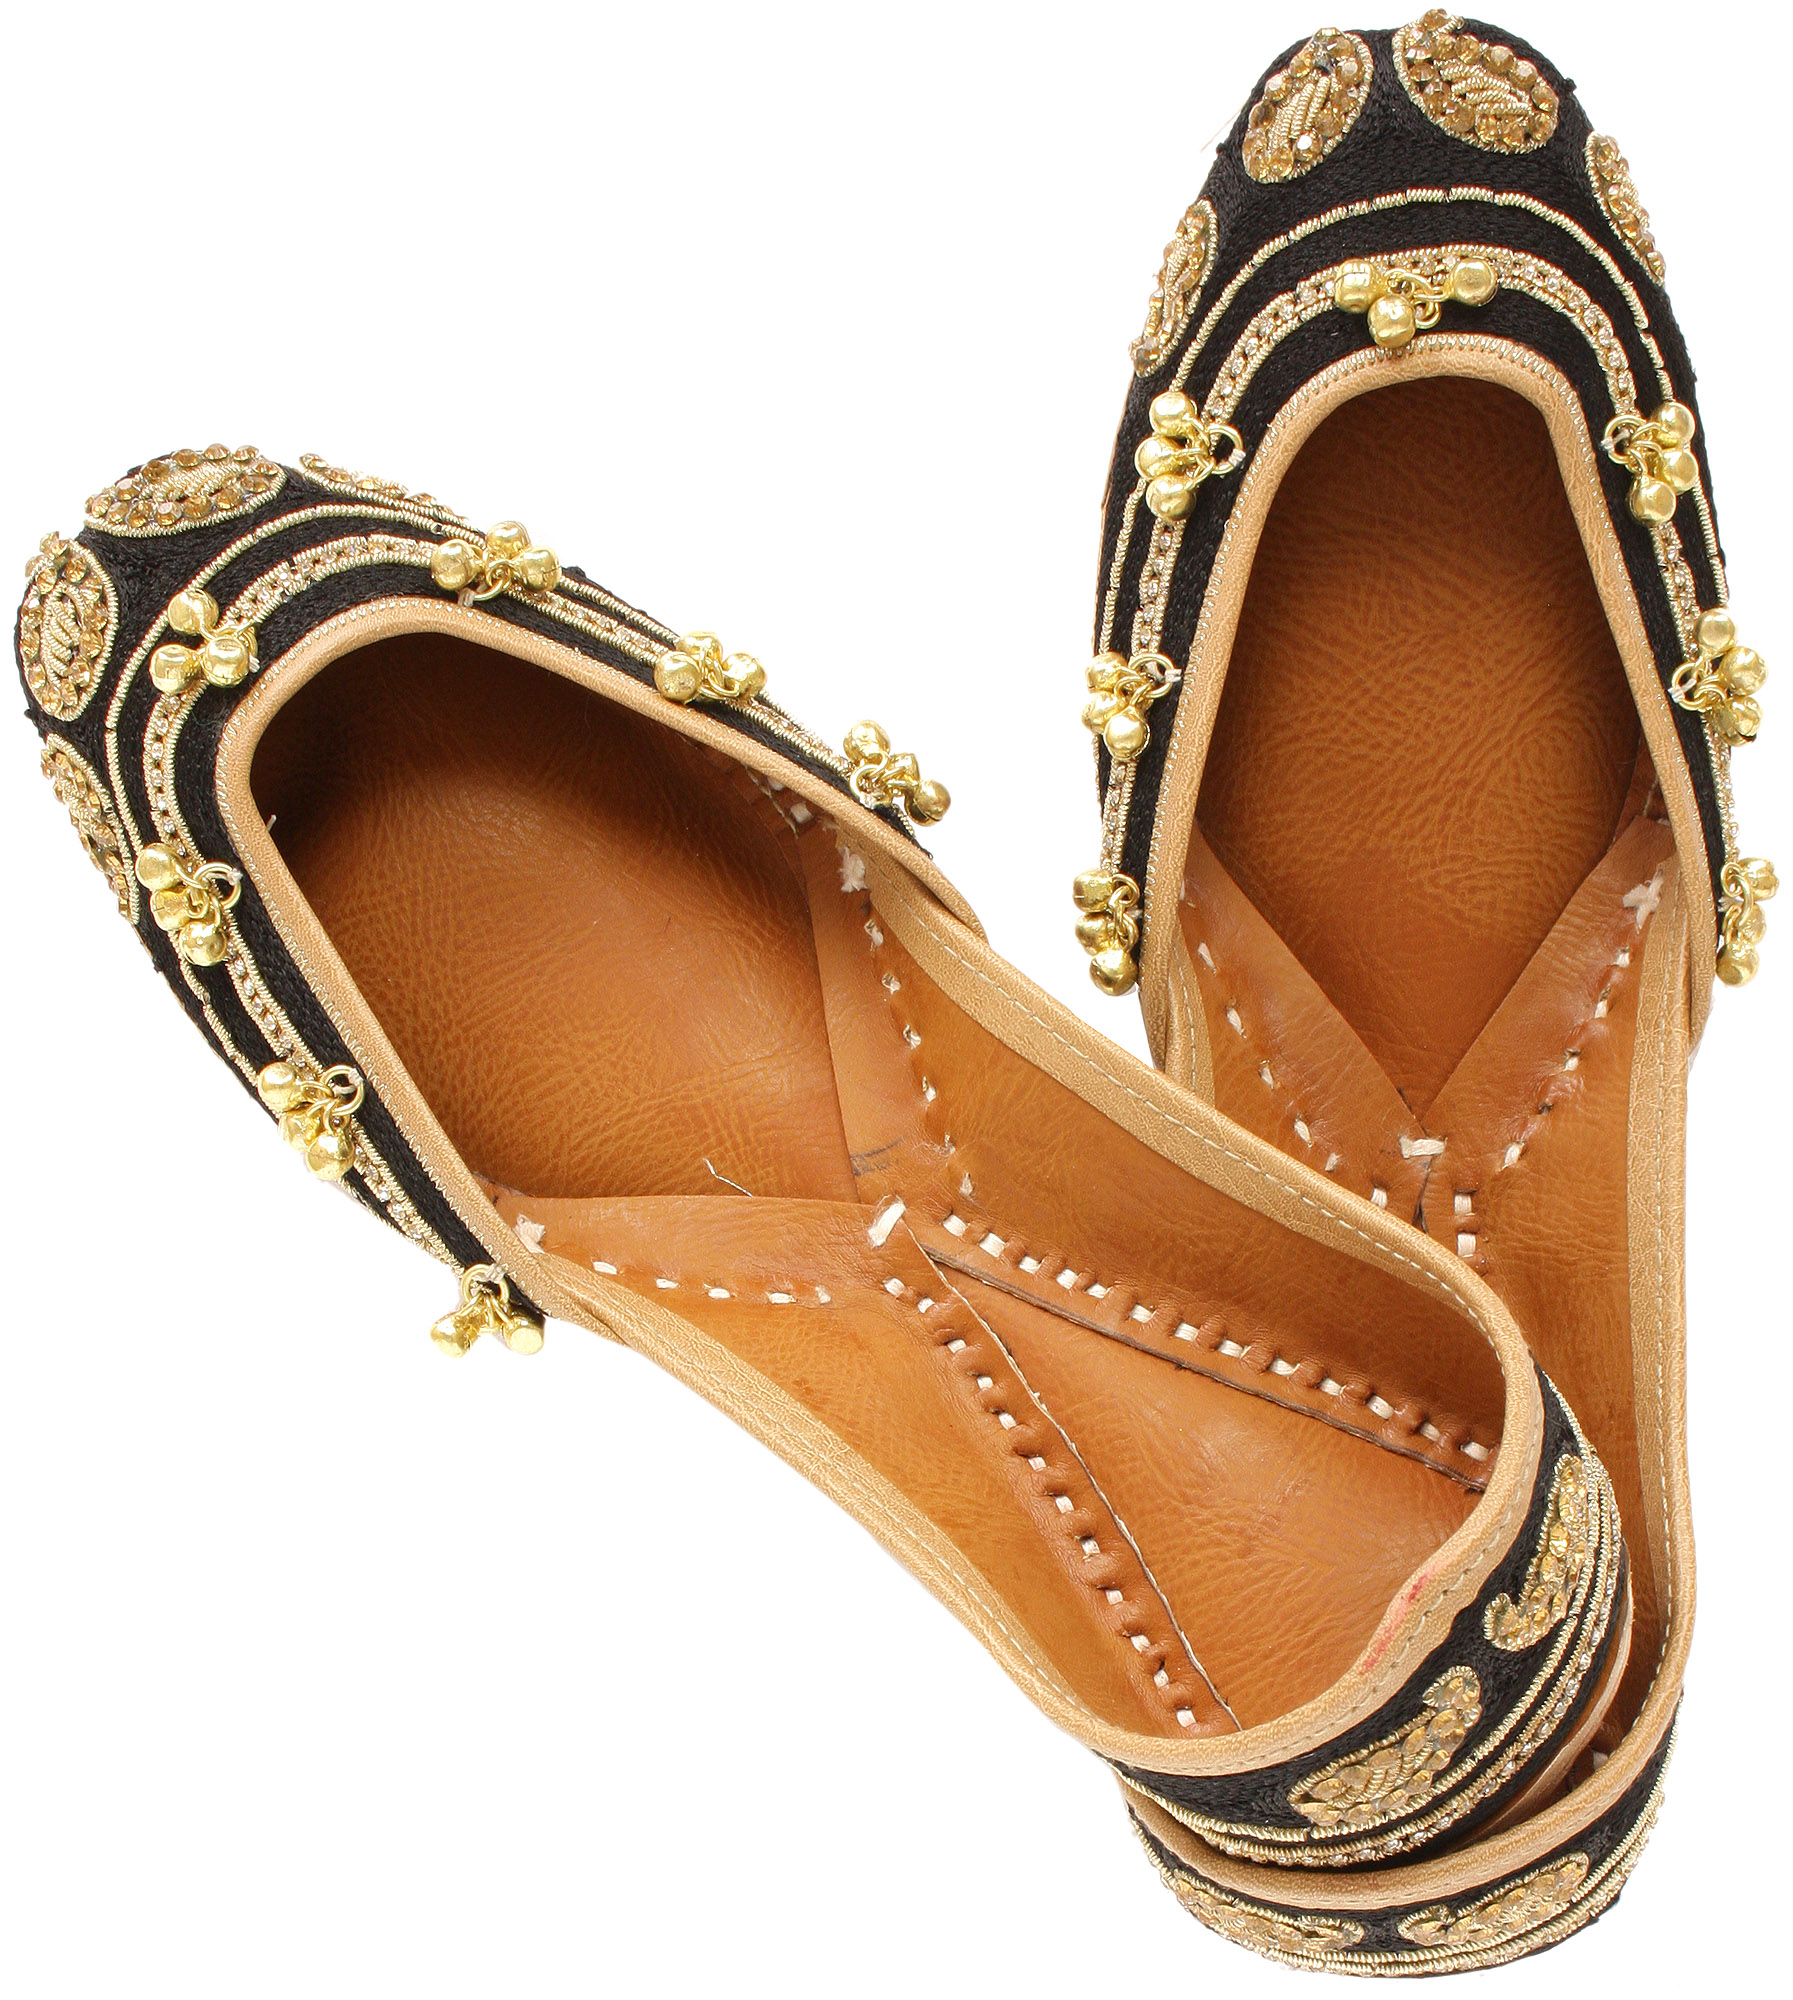 Jootis with Zardozi Embroidered Paisleys and Ghungaroos - Pure Leather - Color Beige Footwear Size 36 Exotic India MvlZkQ